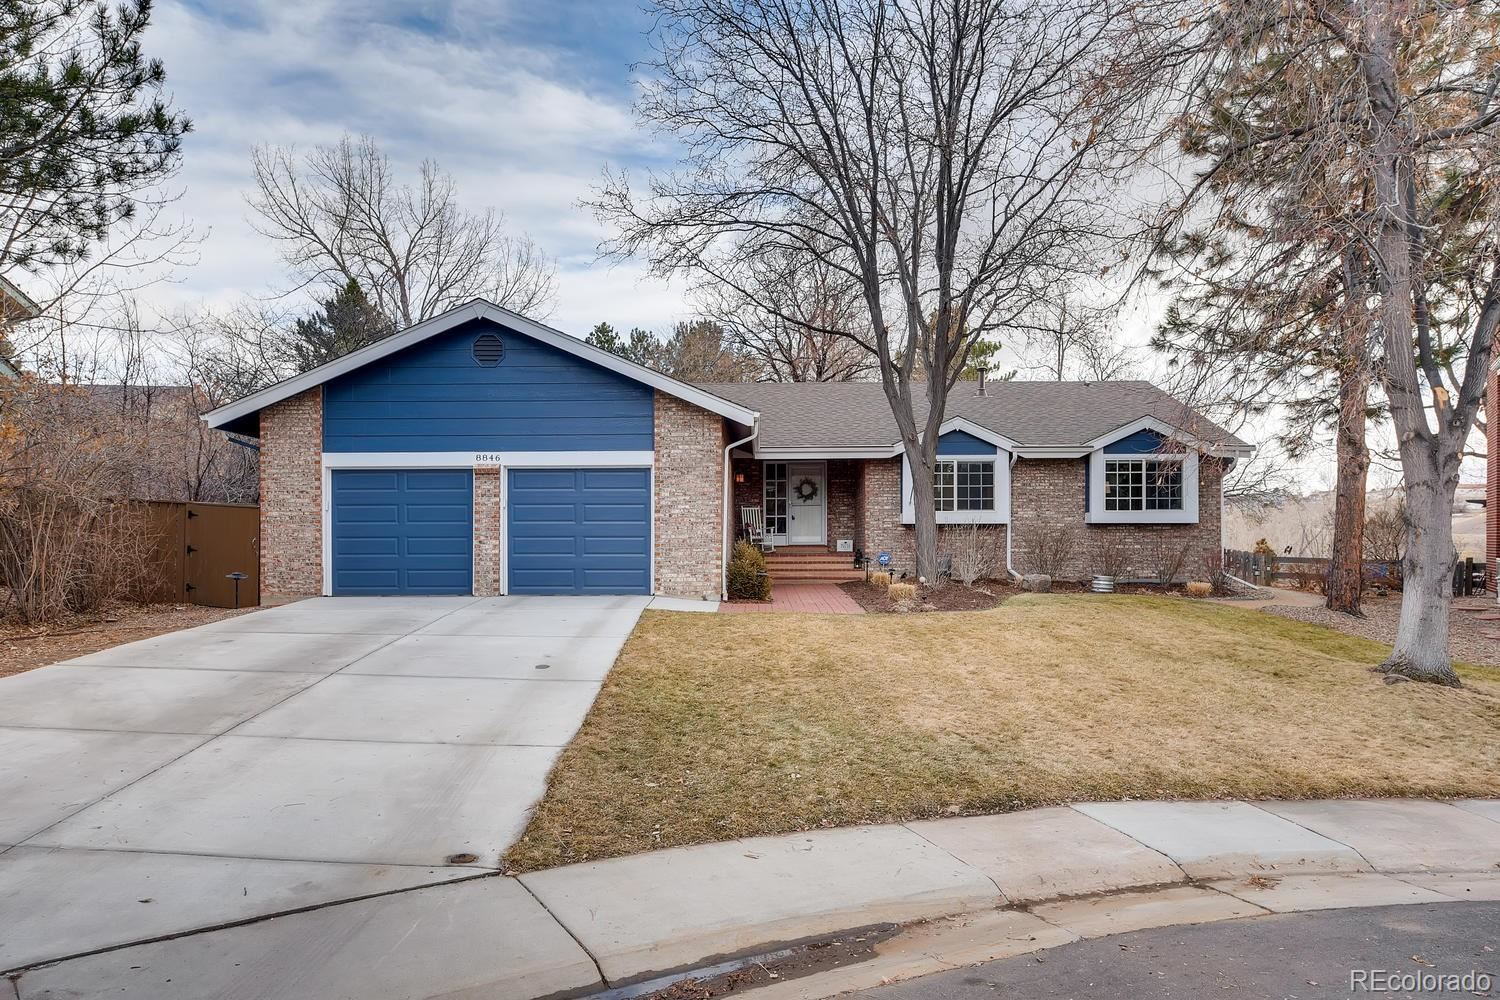 8846 S Briarview Lane, Highlands Ranch, CO 80126 - #: 1875051